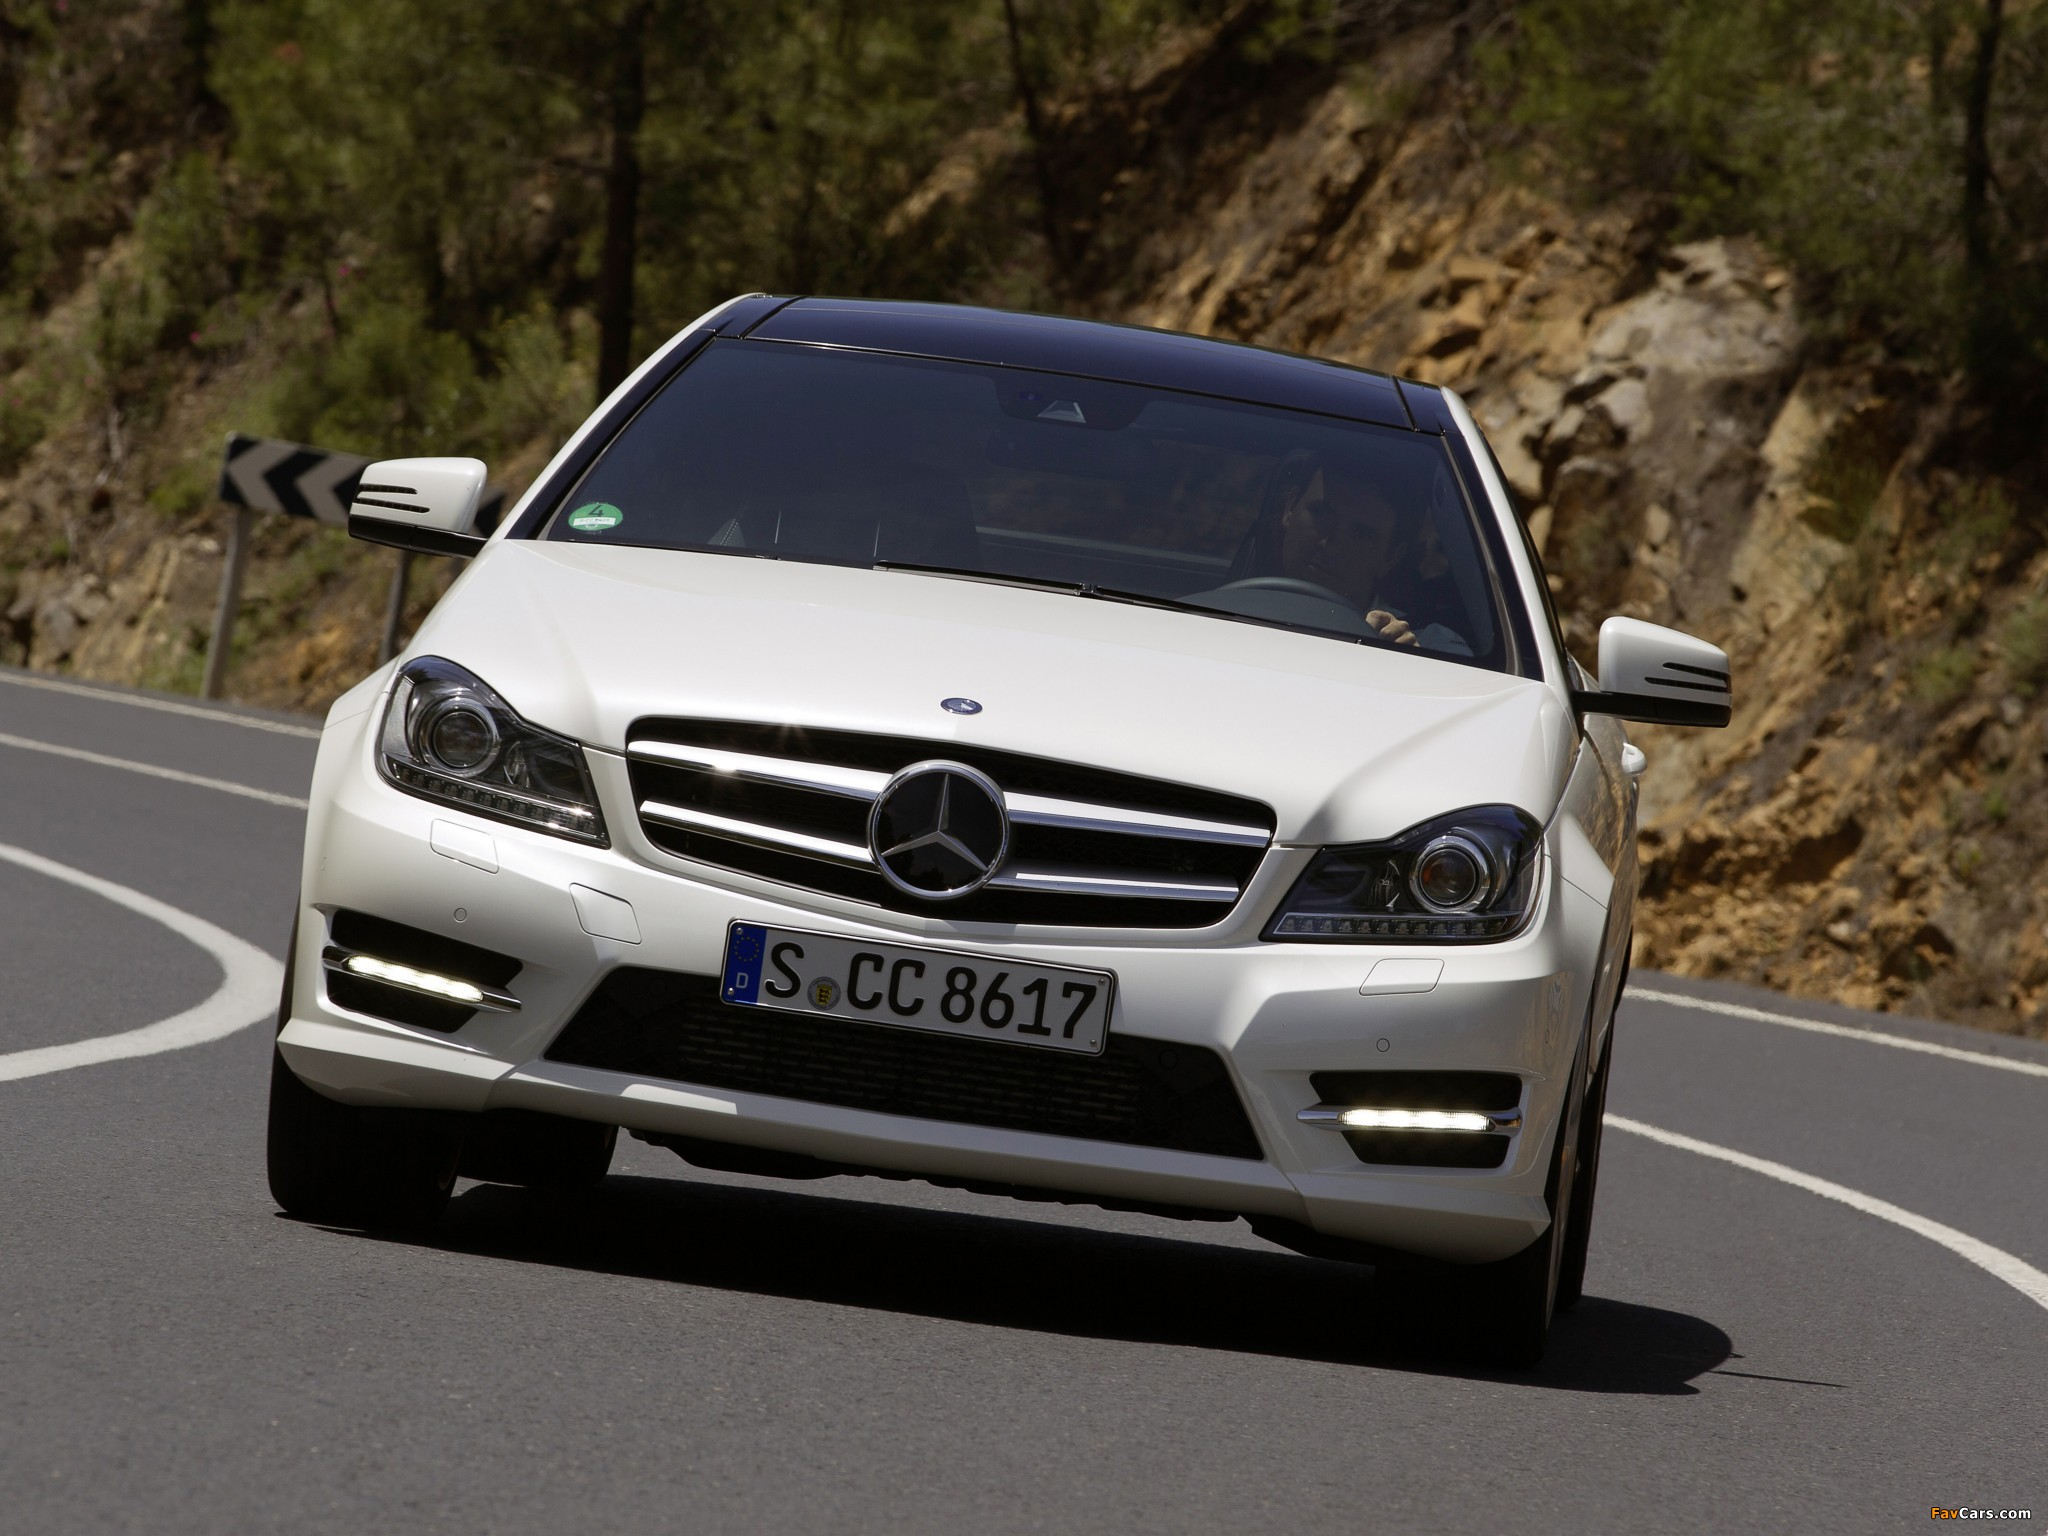 Mercedes-Benz C 220 CDI Coupe (C204) 2011 wallpapers (2048 x 1536)